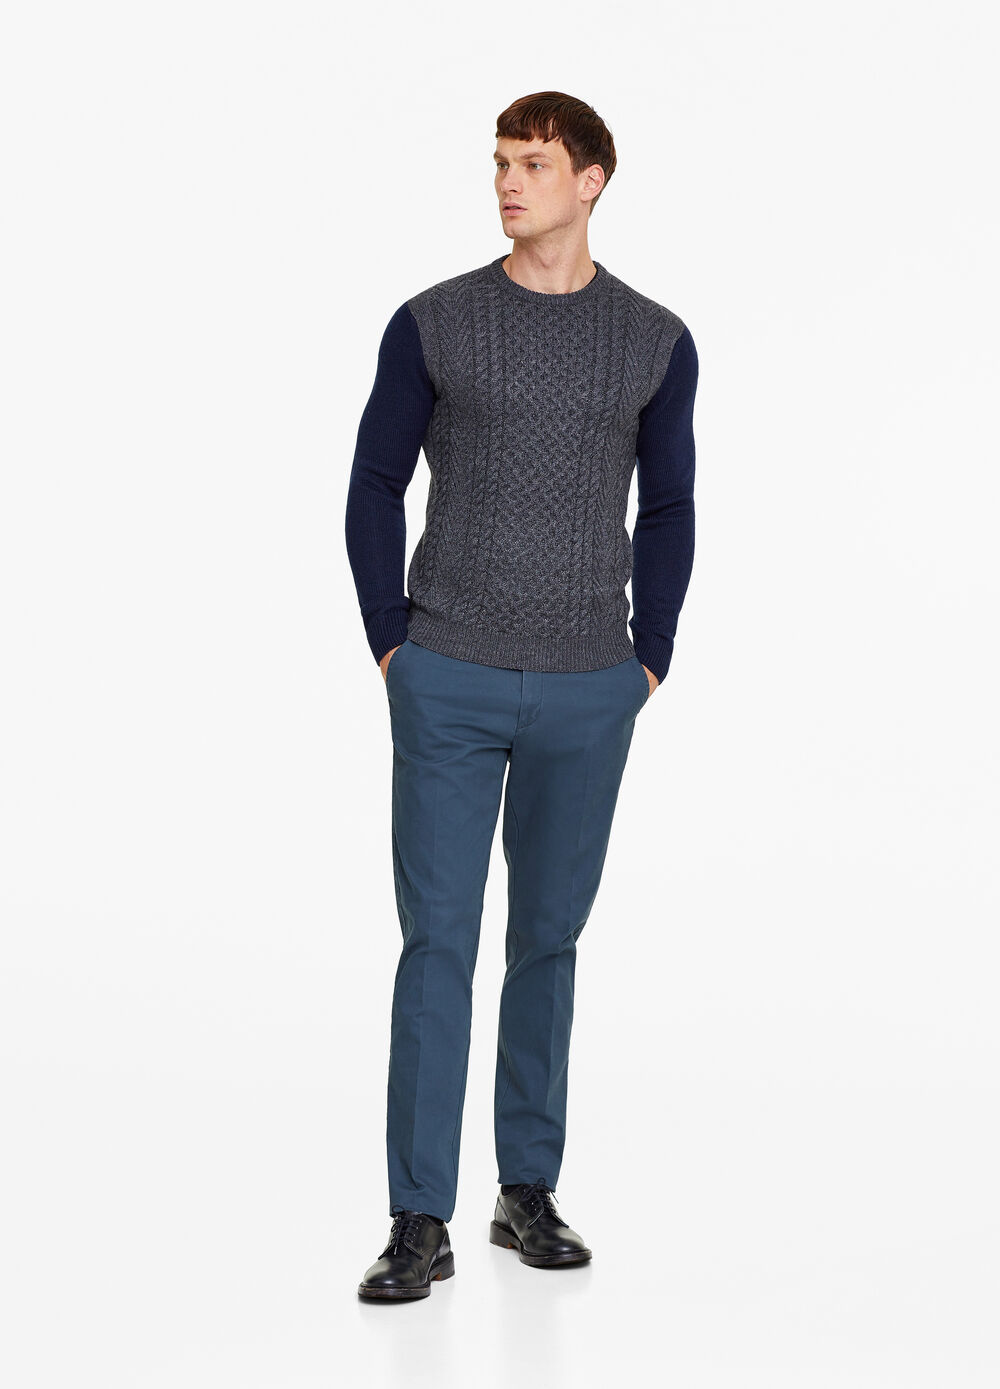 Knitted pullover in alpaca wool blend